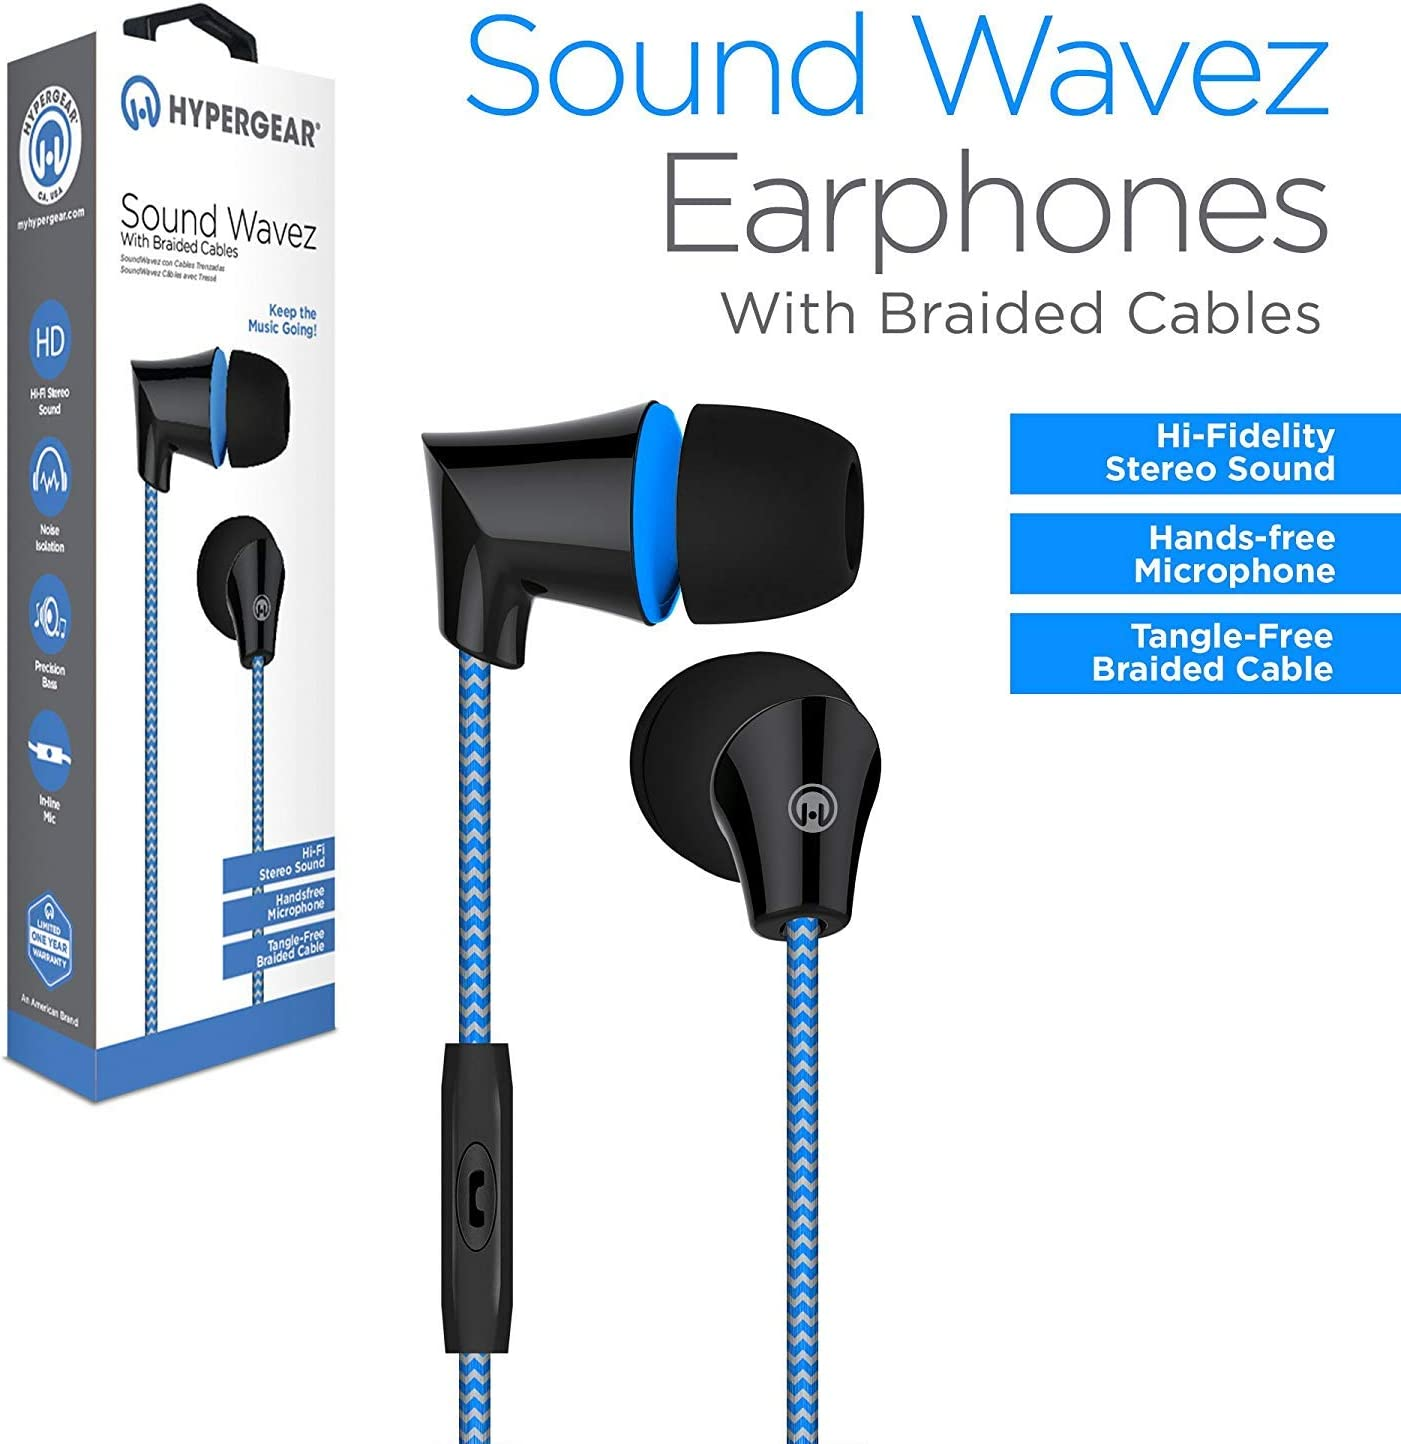 Black in-line Microphone Comfort-fit Ear Gels Blocks Out Noise /& Seal in Sound Tangle-Free Braided Cable,10mm Neodymium /& Precision Bass Hands-Free Calls /& Music Hypergear Sound Wavez Earphones